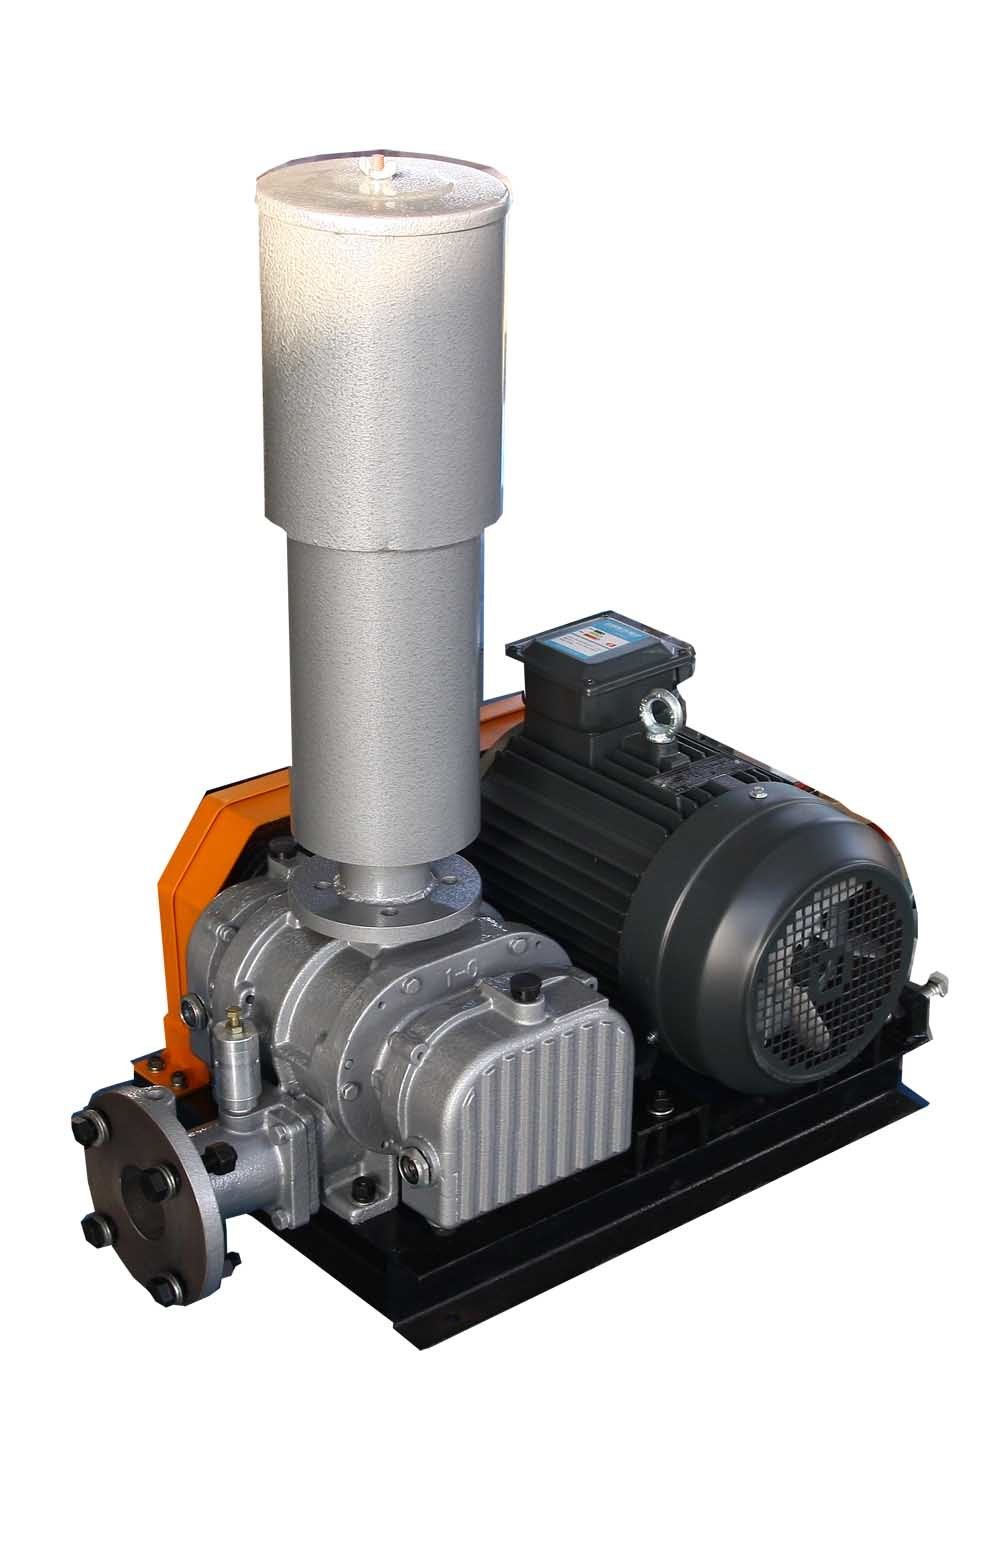 Roots Blower (Bare Shaft Blower)